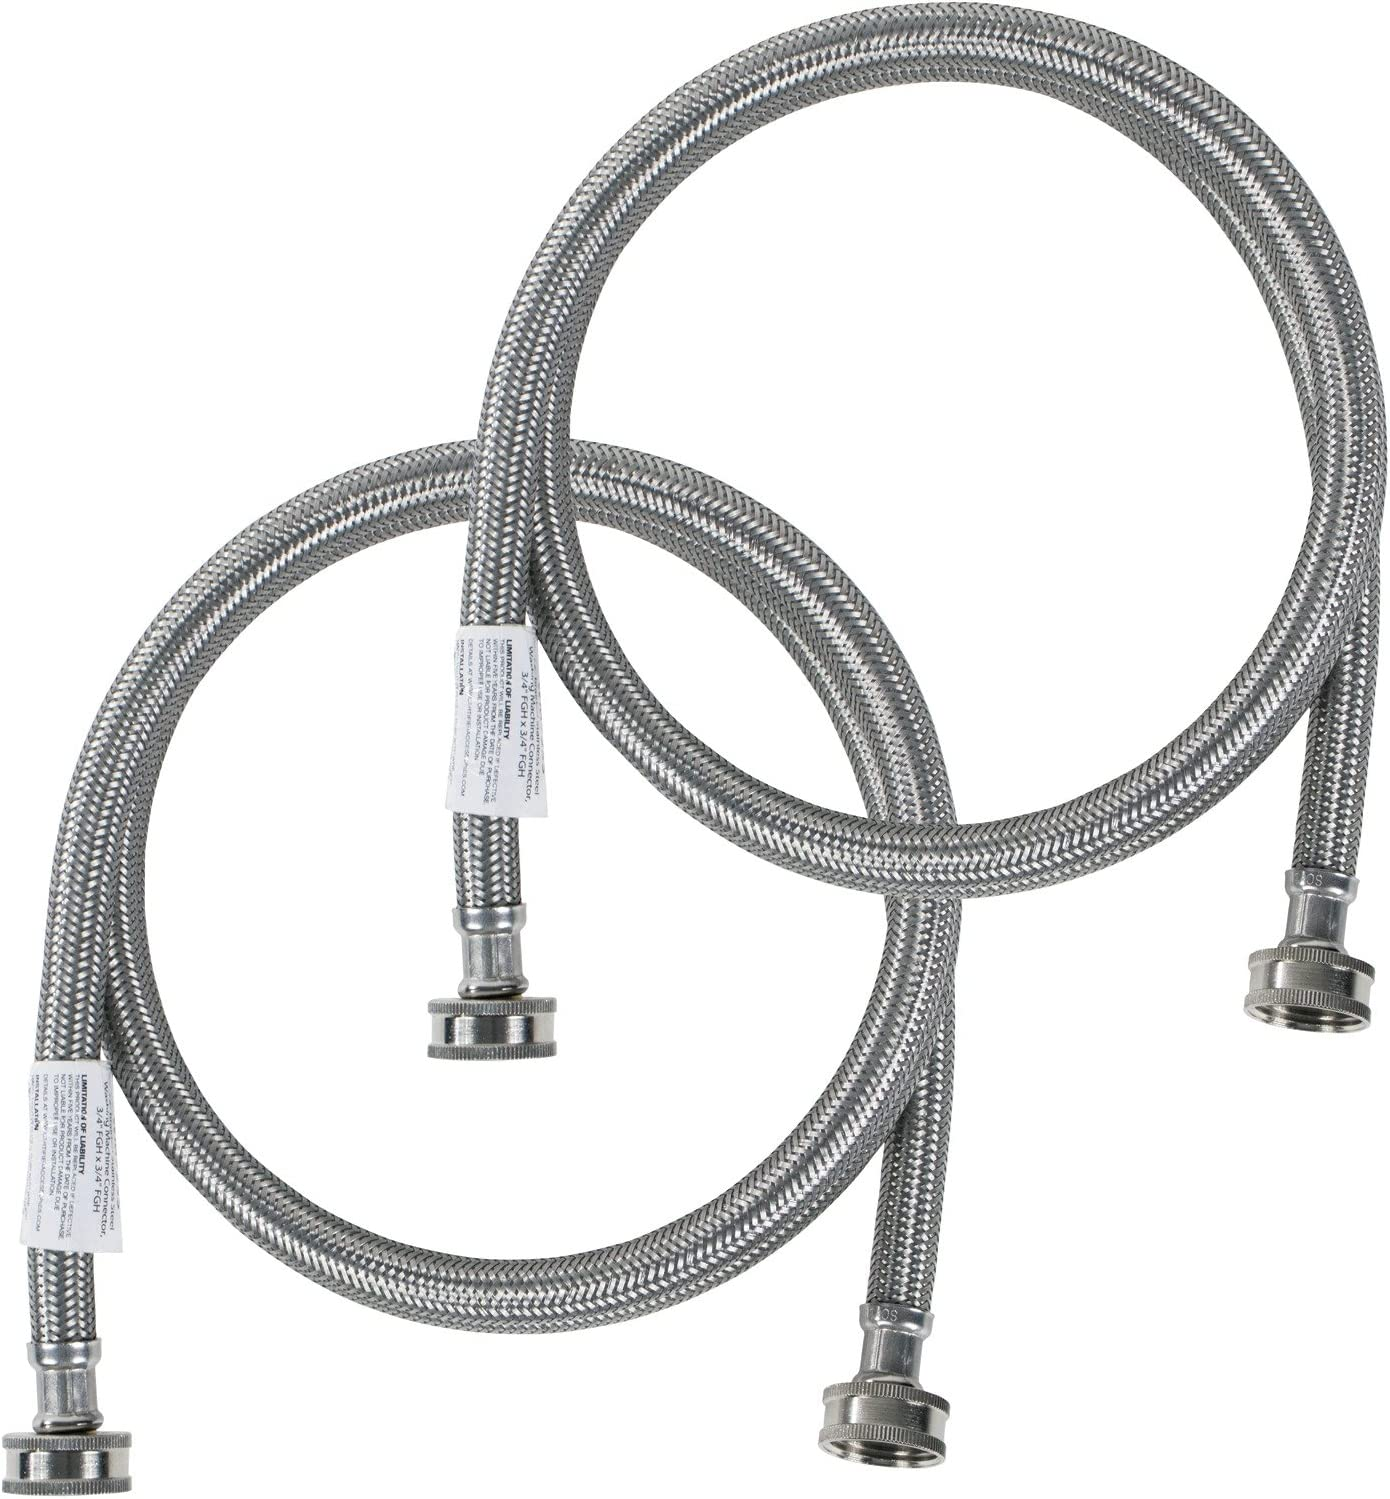 Certified Appliance Accessories Washing Machine Hoses (2 Pack), Hot and Cold Water Supply Lines, 6 Feet, PVC Core with Premium Braided Stainless Steel in Protective Clamshell Packaging